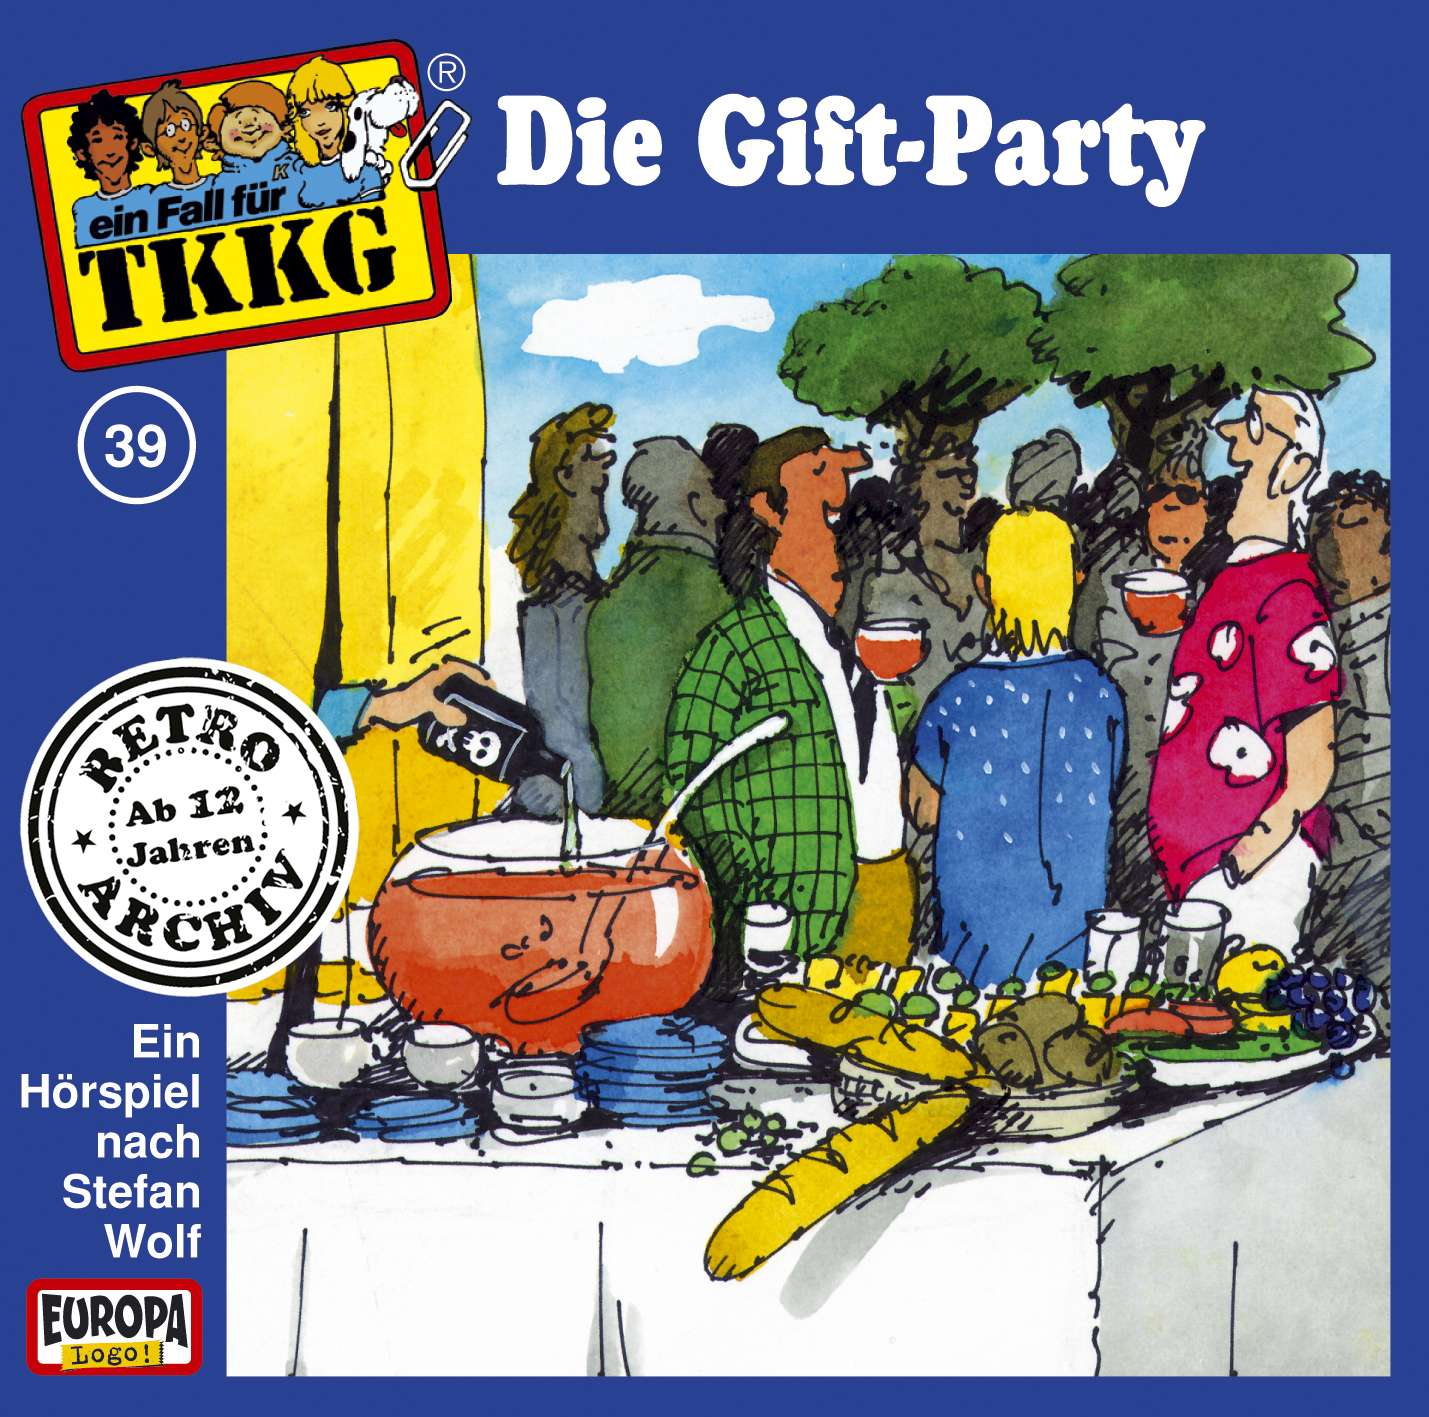 TKKG Retro-Archiv: Die Gift-Party